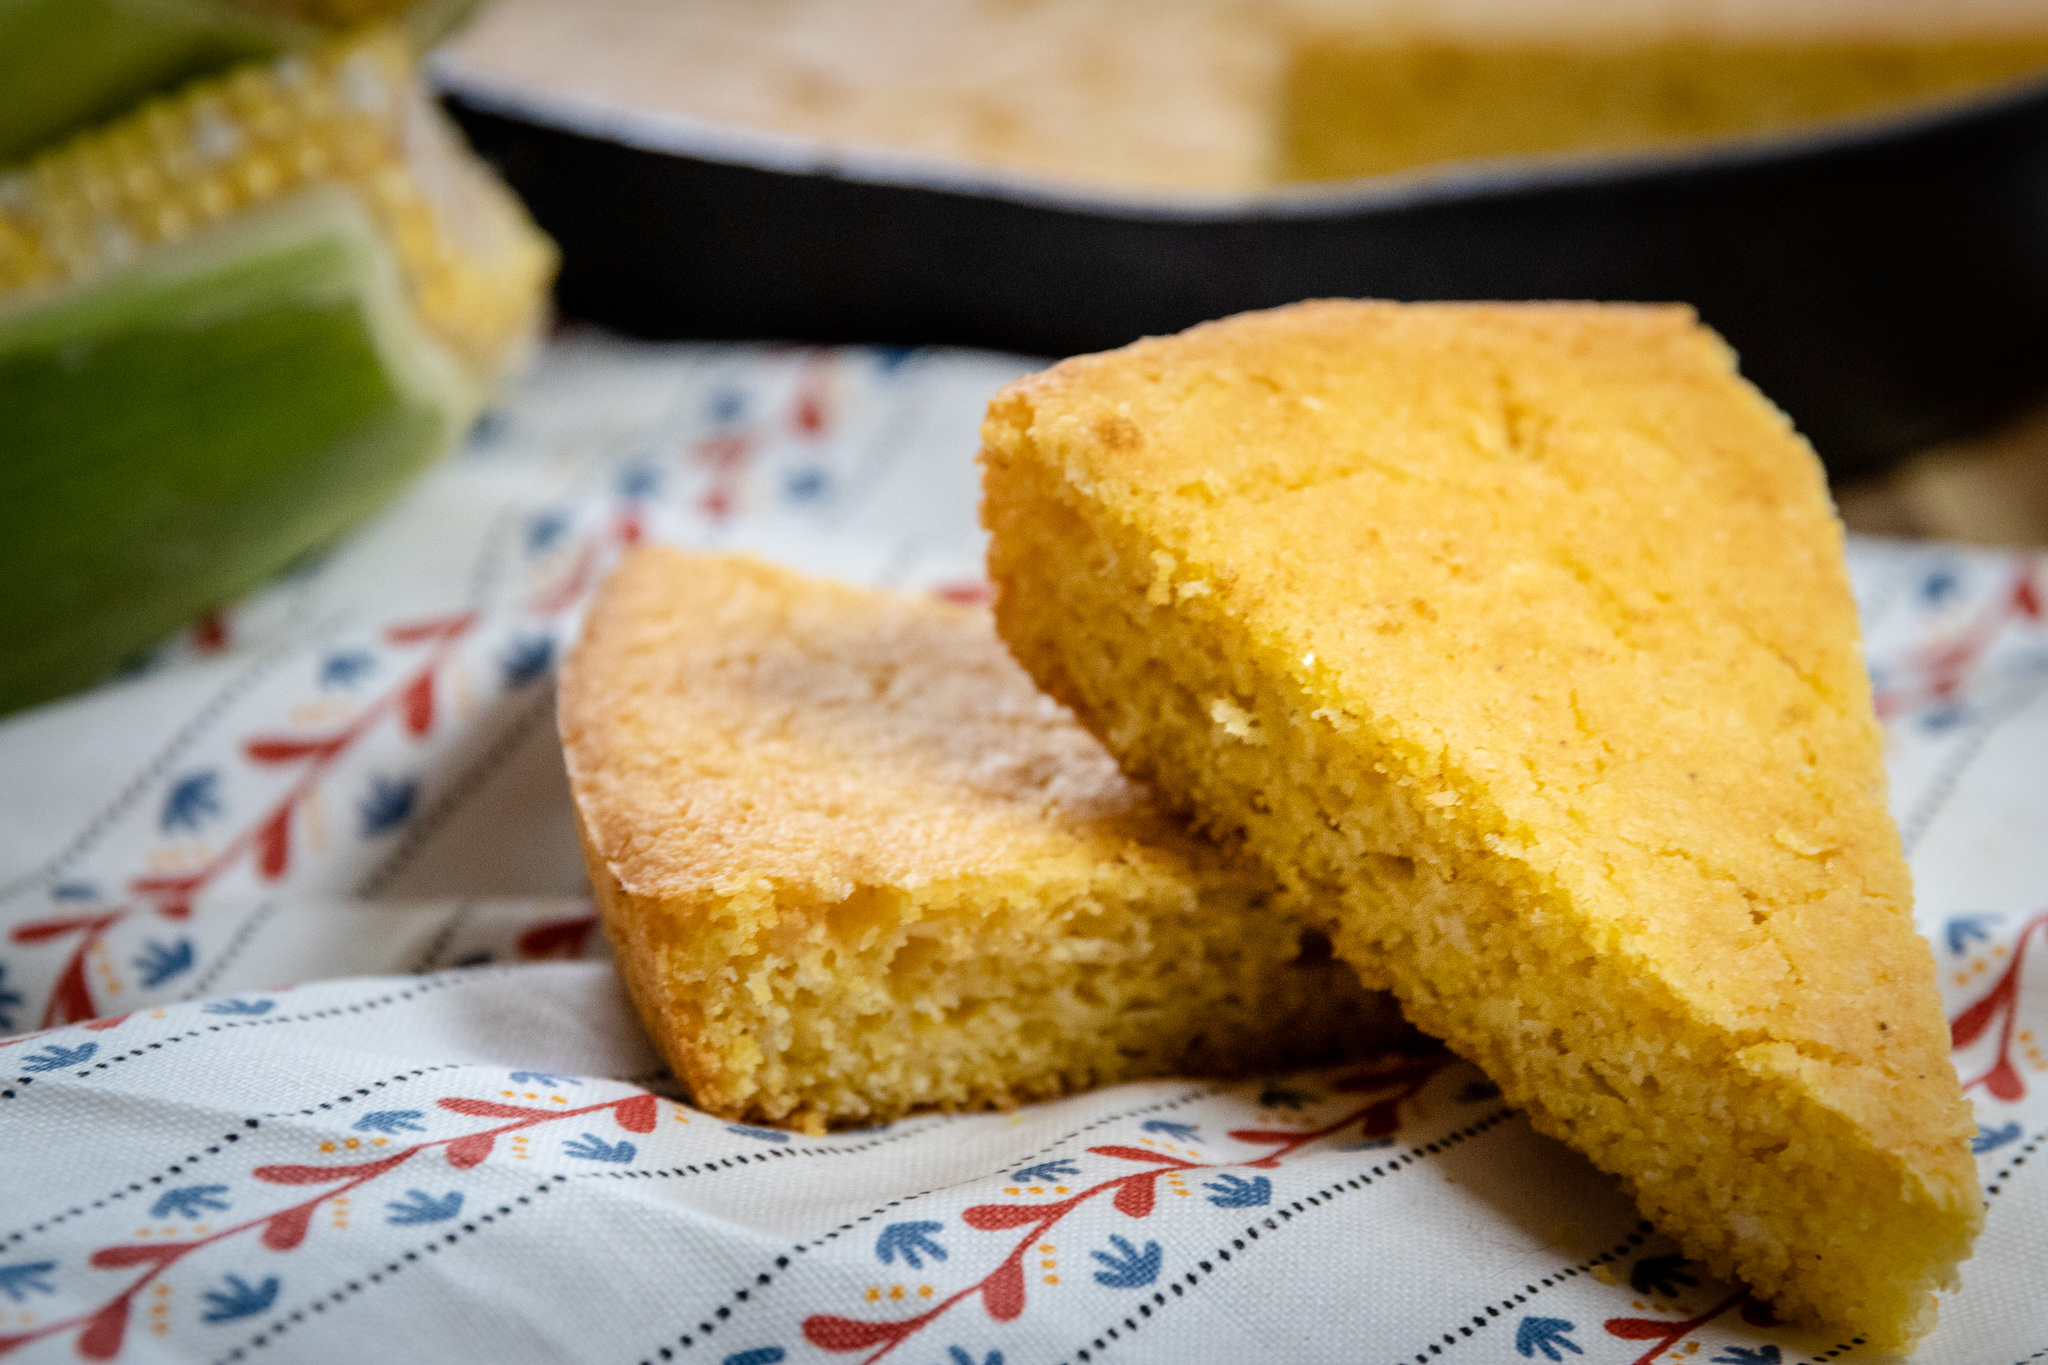 Nothing goes better with a hot bowl of soup, chili, or beans than some homemade cornbread. My mom has always used mayo in her cornbread in place of eggs, so swapping out for vegan mayo was an easy fix. Using oat milk will help you get a darker color in vegan baked goods, but use whatever plant based milk you have on hand. You can easily bake these up in a muffin tin as well, if you prefer corn muffins to regular cornbread.